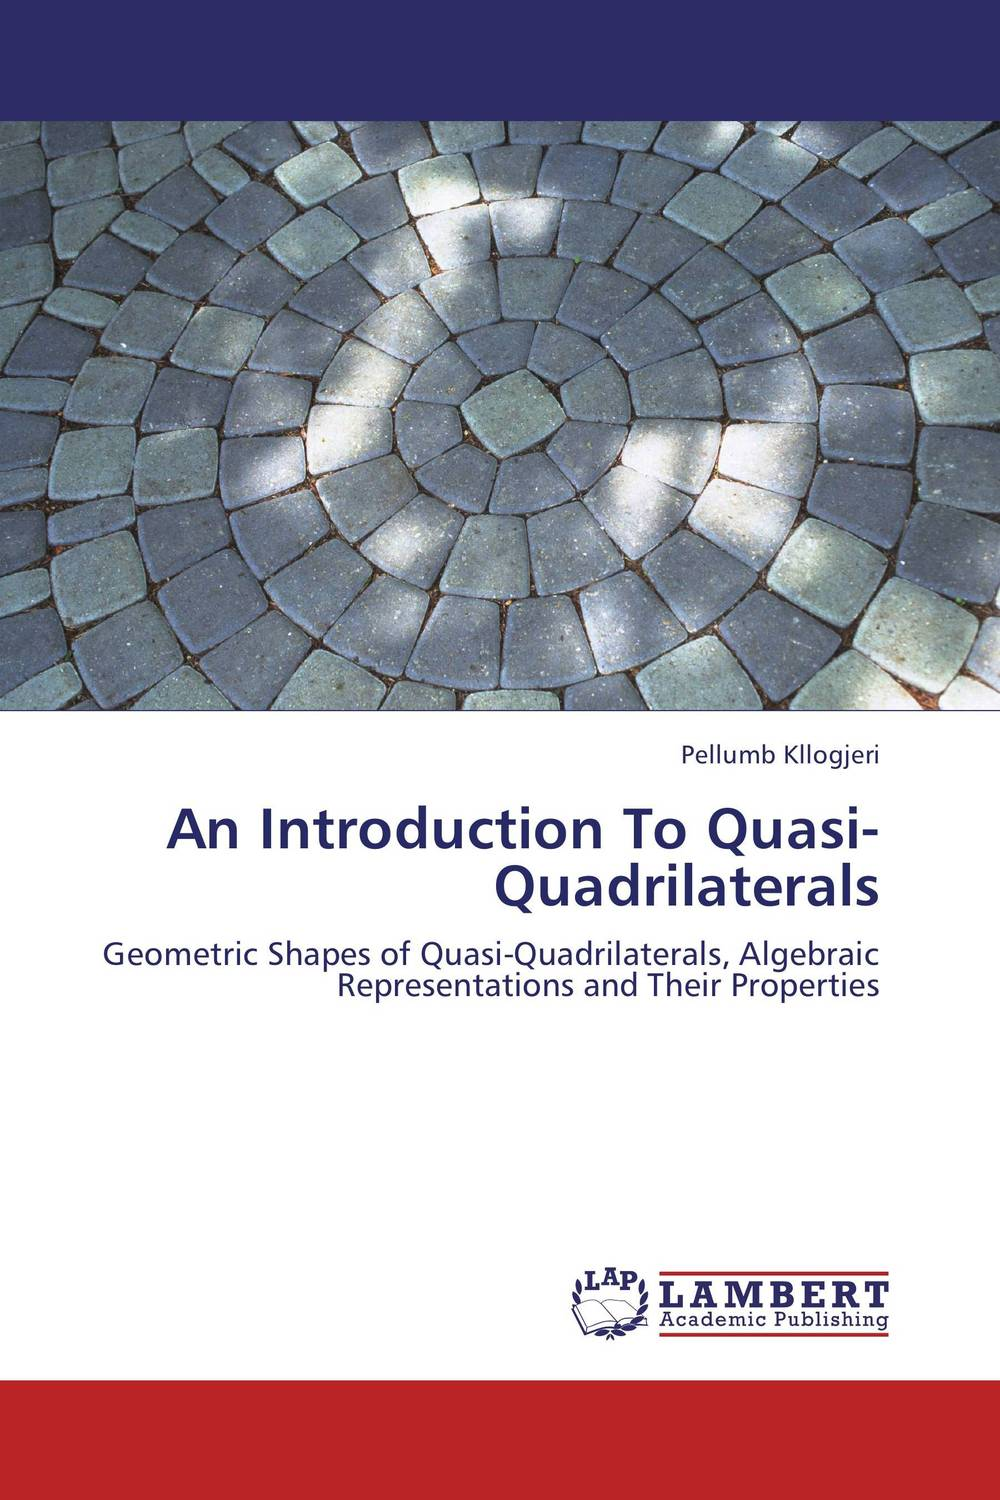 An Introduction To Quasi-Quadrilaterals belousov a security features of banknotes and other documents methods of authentication manual денежные билеты бланки ценных бумаг и документов